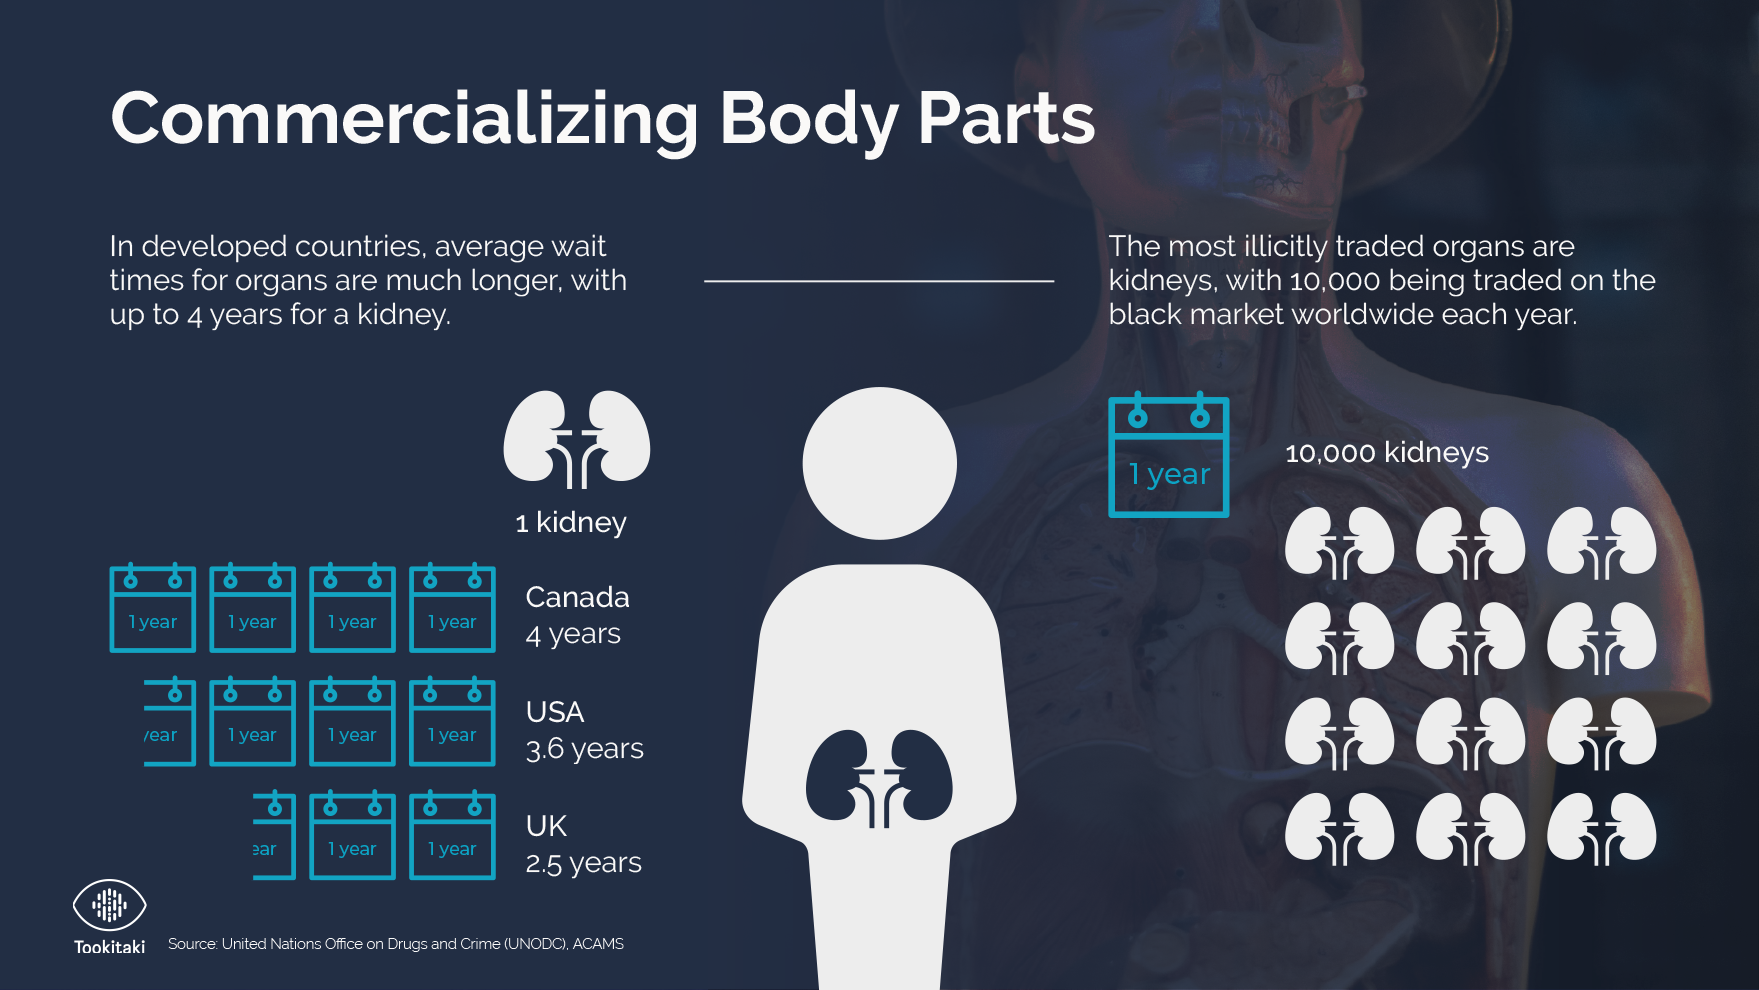 Commercializing Body Parts